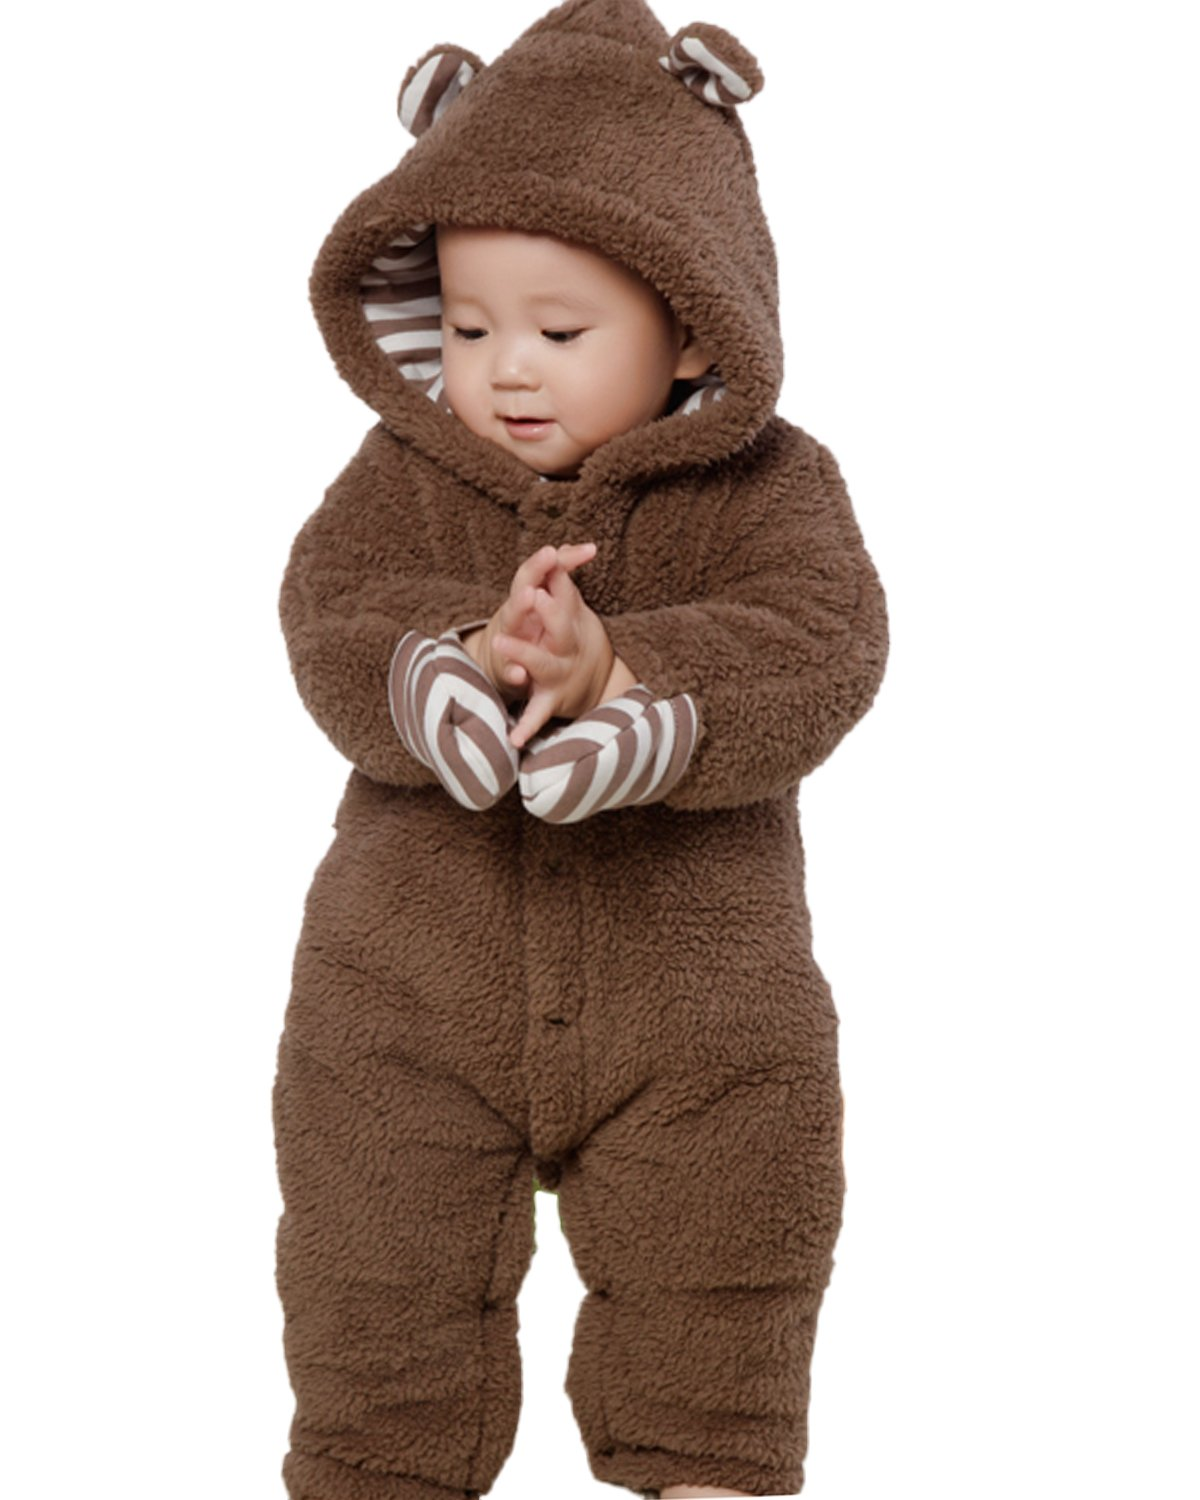 Kidsform Infant Winter Snowsuit Baby Bear Hoodie Romper Outfit Fleece Bunting Pram Suit Outerwear Coat Coveralls 0-24M Brown 3-6M by Kidsform (Image #1)